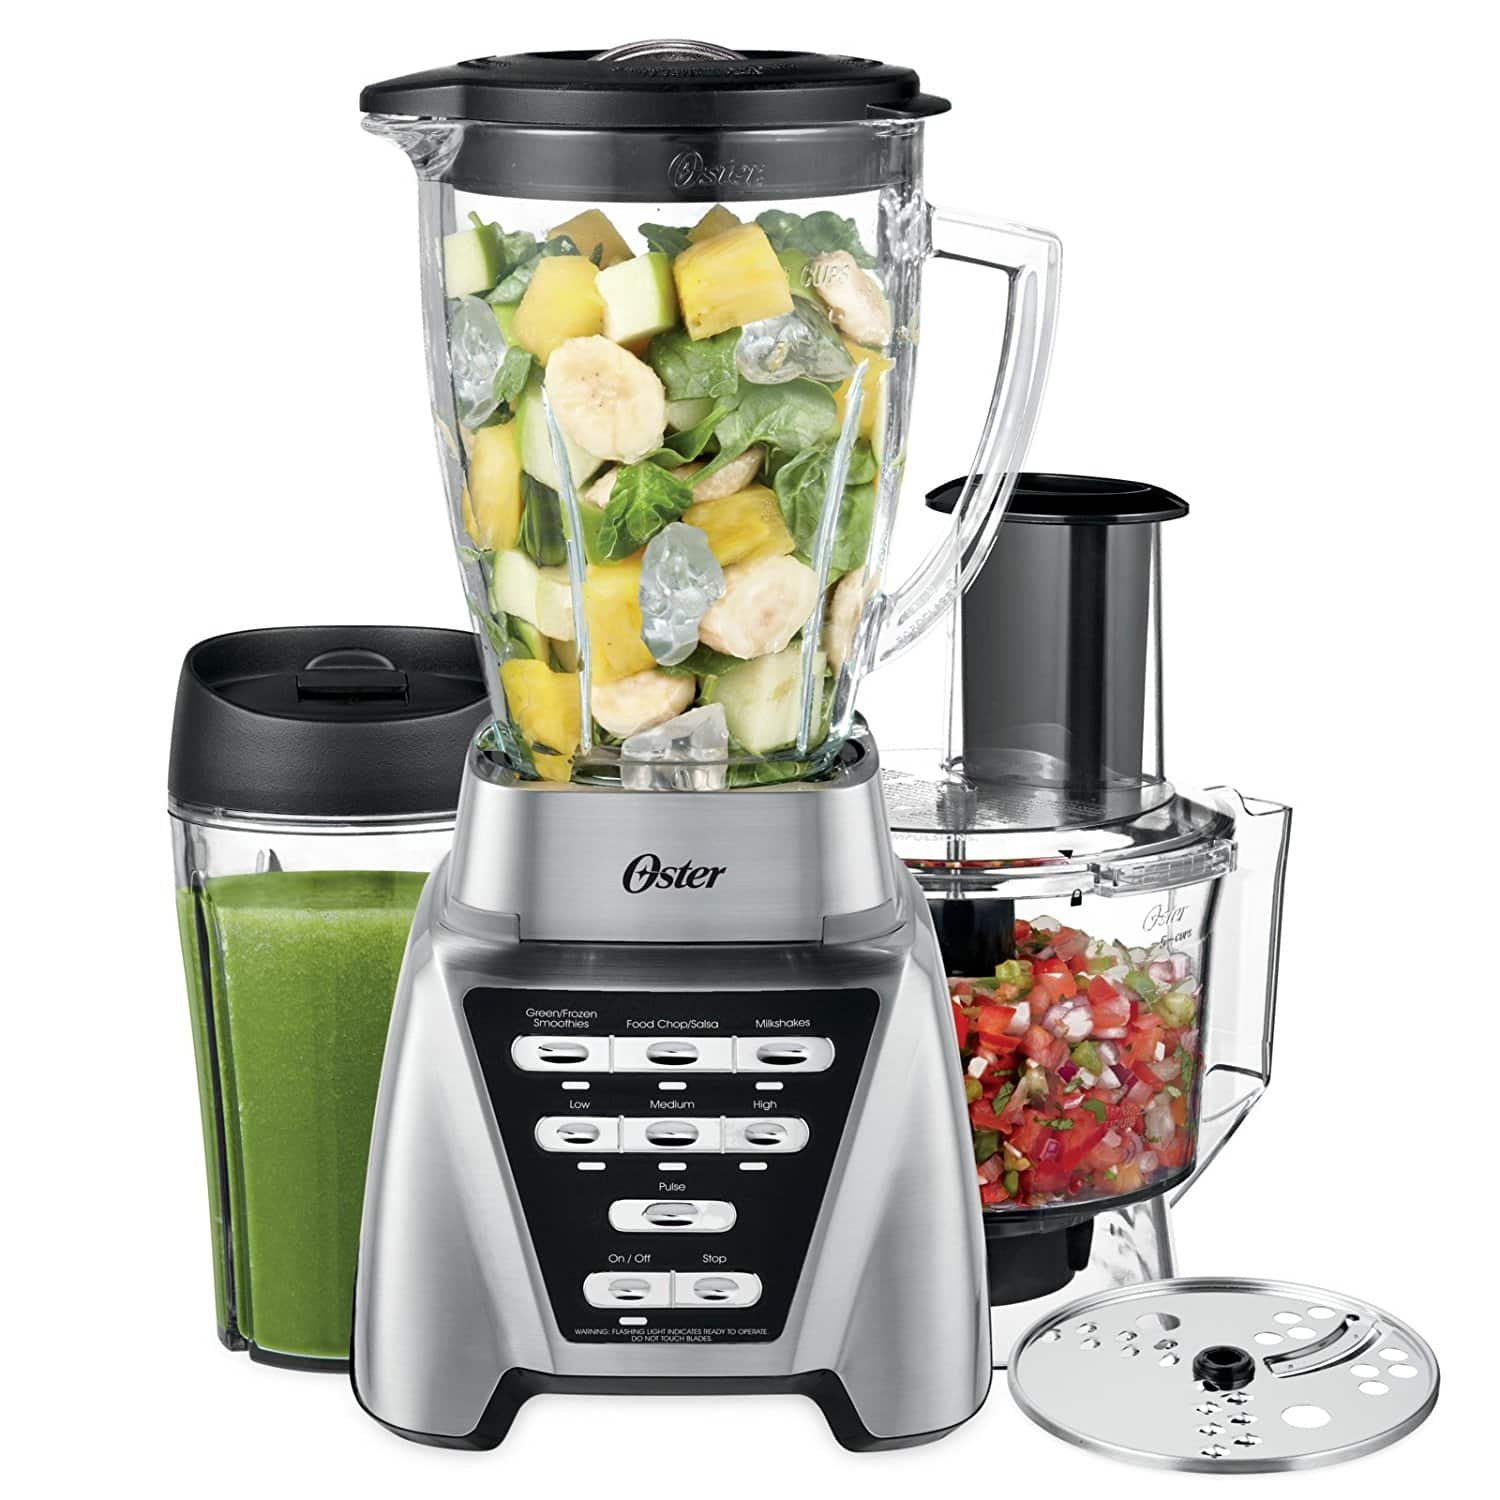 Oster Pro 1200 Blender 3-in-1 with Food Processor Attachment and XL Personal Blending (smoothie) Cup $56